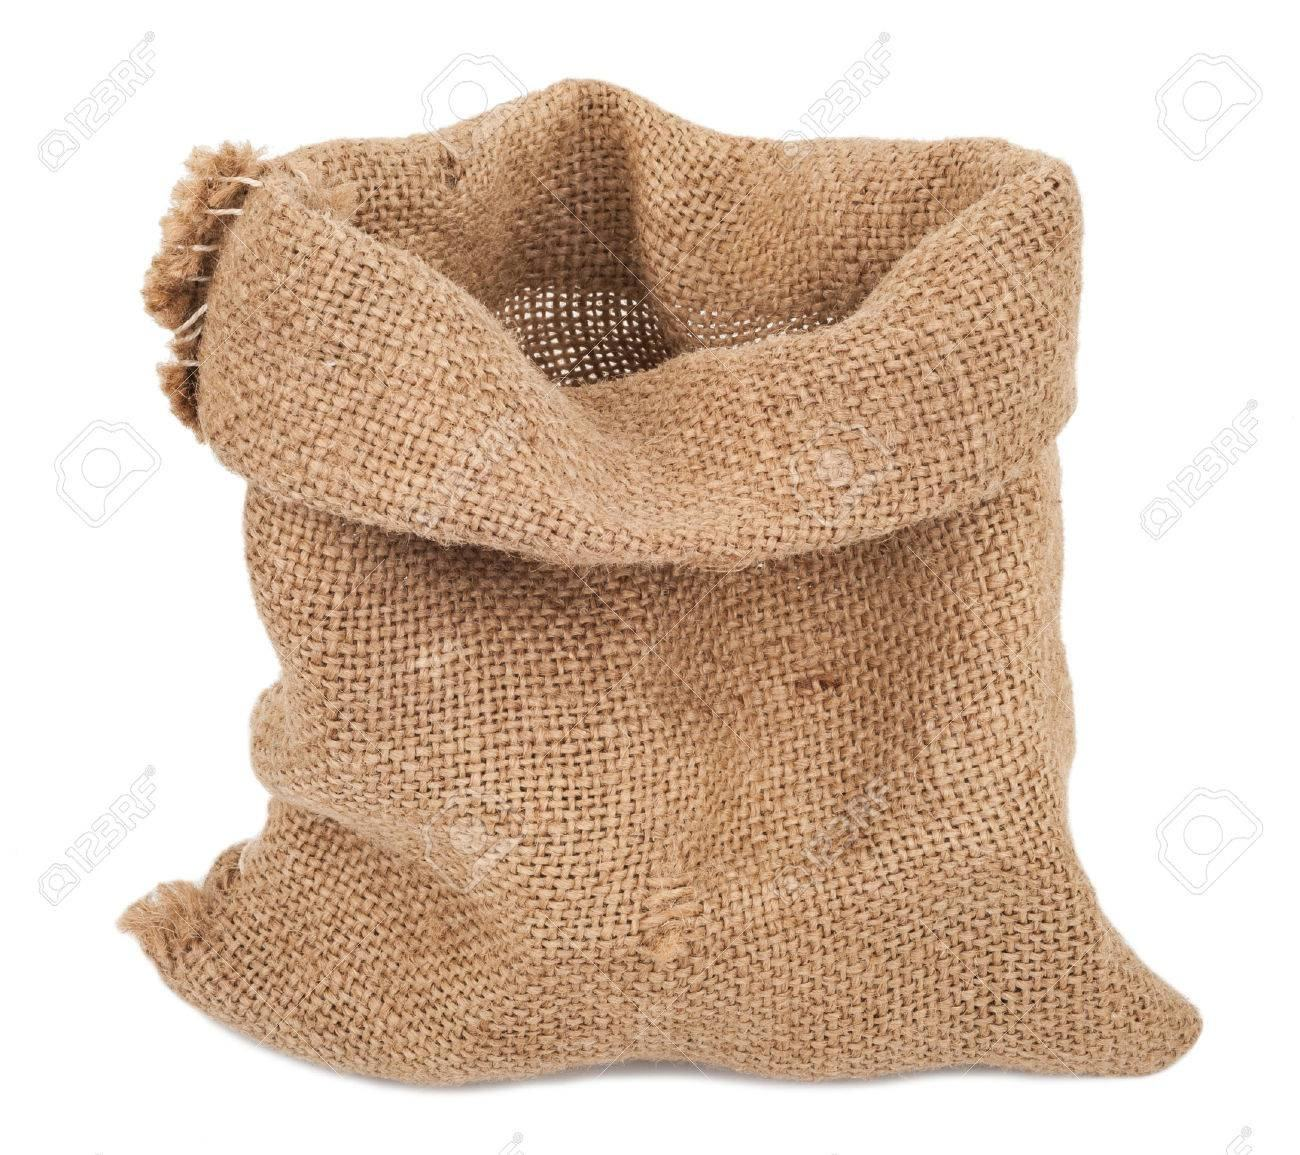 100 % Food grade Hessian Jute Sacks